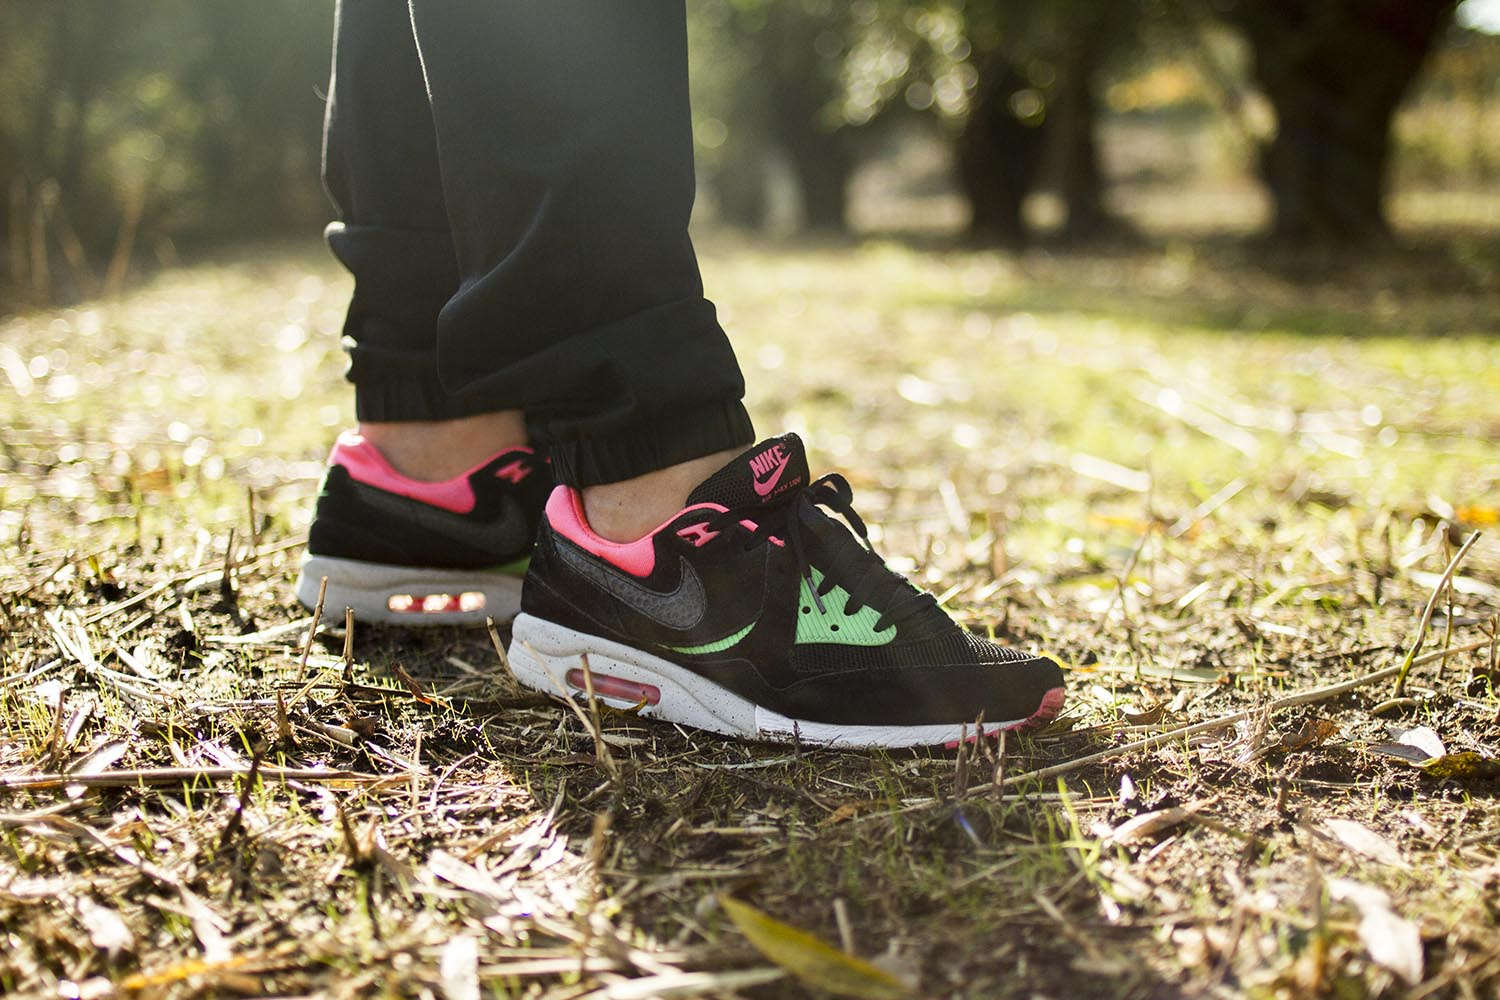 Morad – Nike air max Urban safari